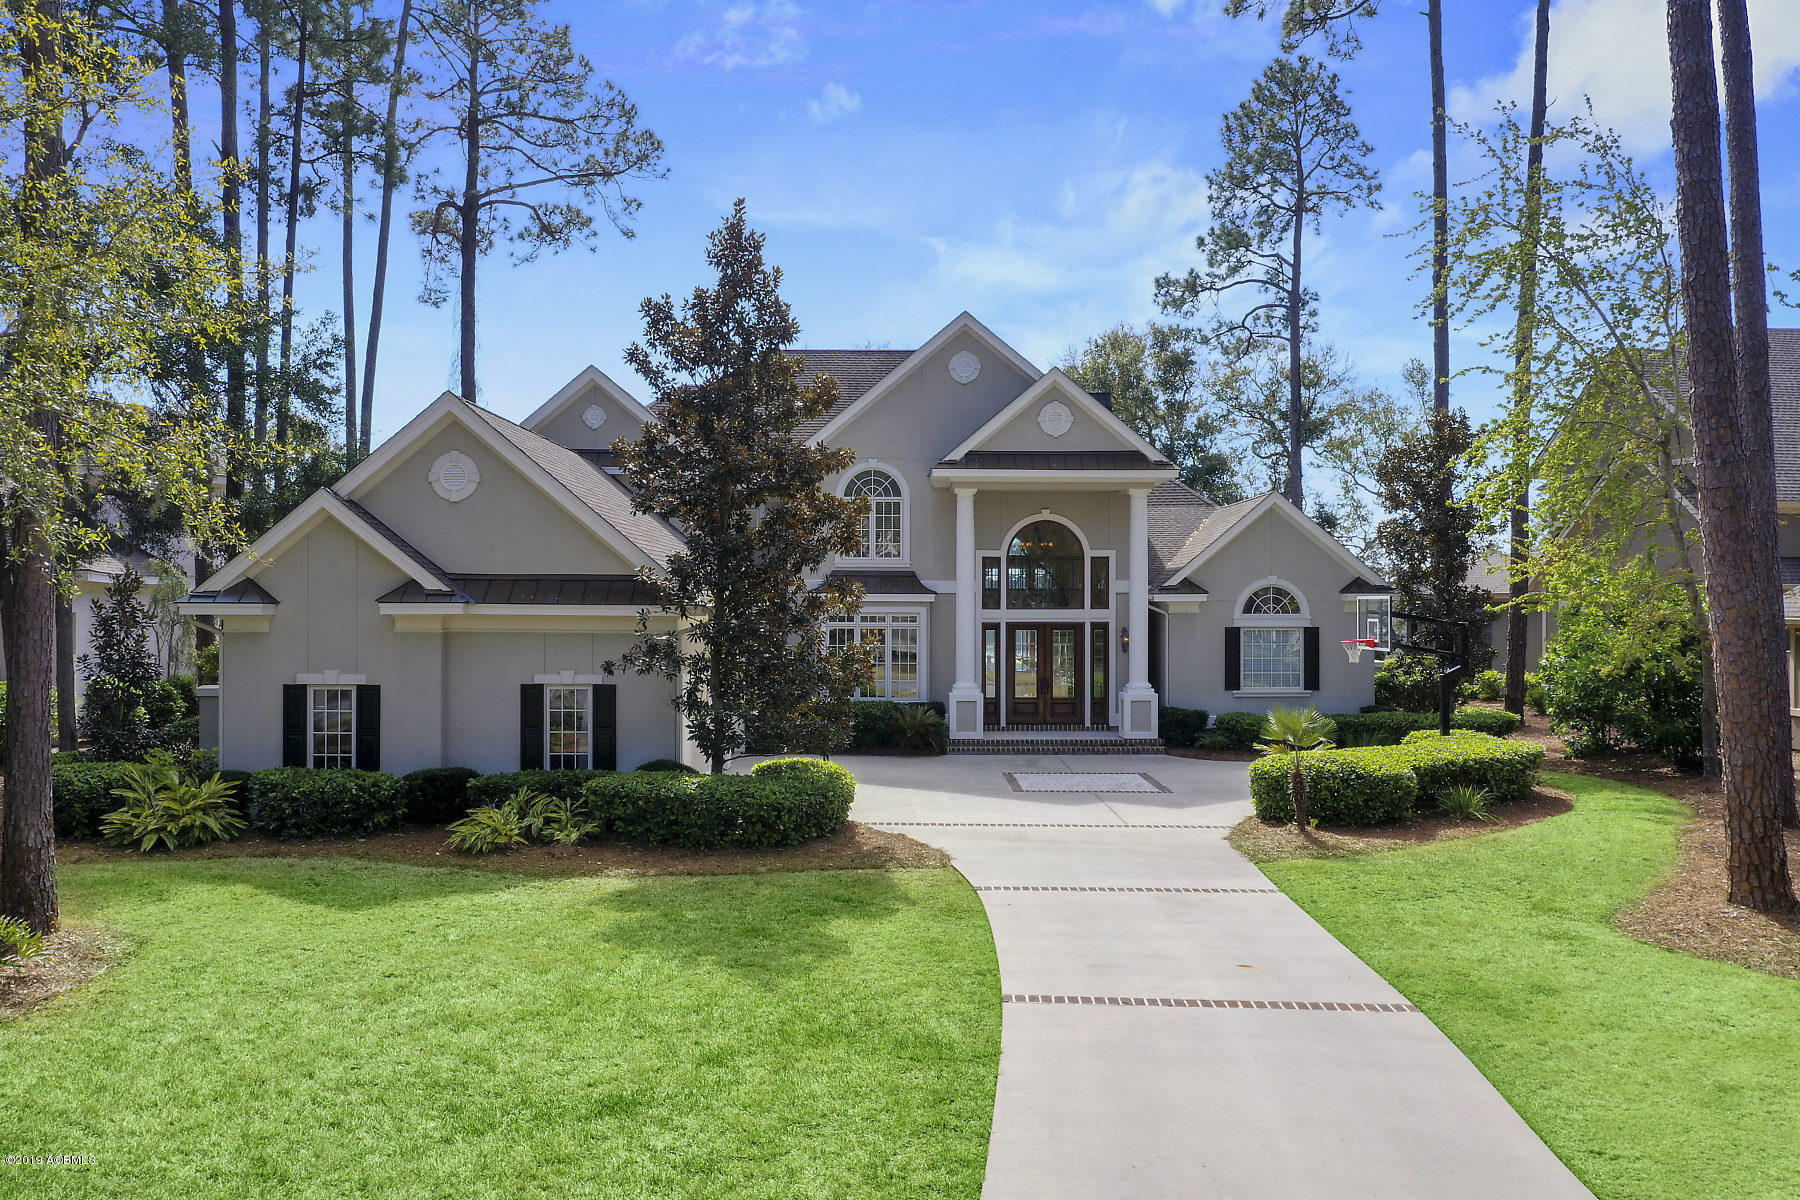 Photo of 46 Wilers Creek Way, Hilton Head Island, SC 29926